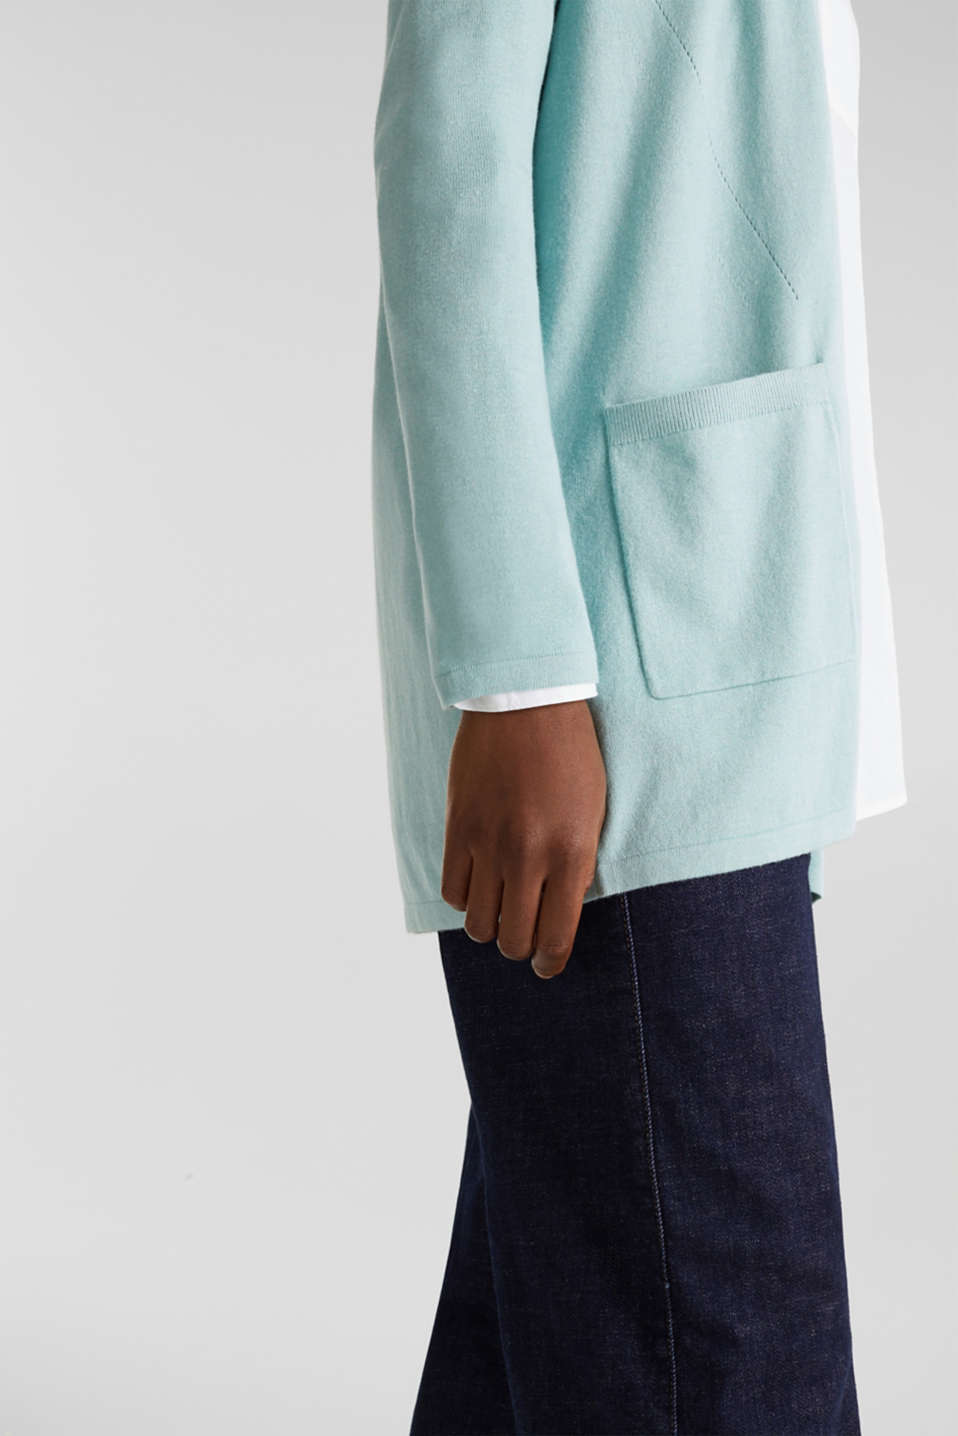 With linen: open cardigan with open-work pattern details, LIGHT AQUA GREEN, detail image number 4